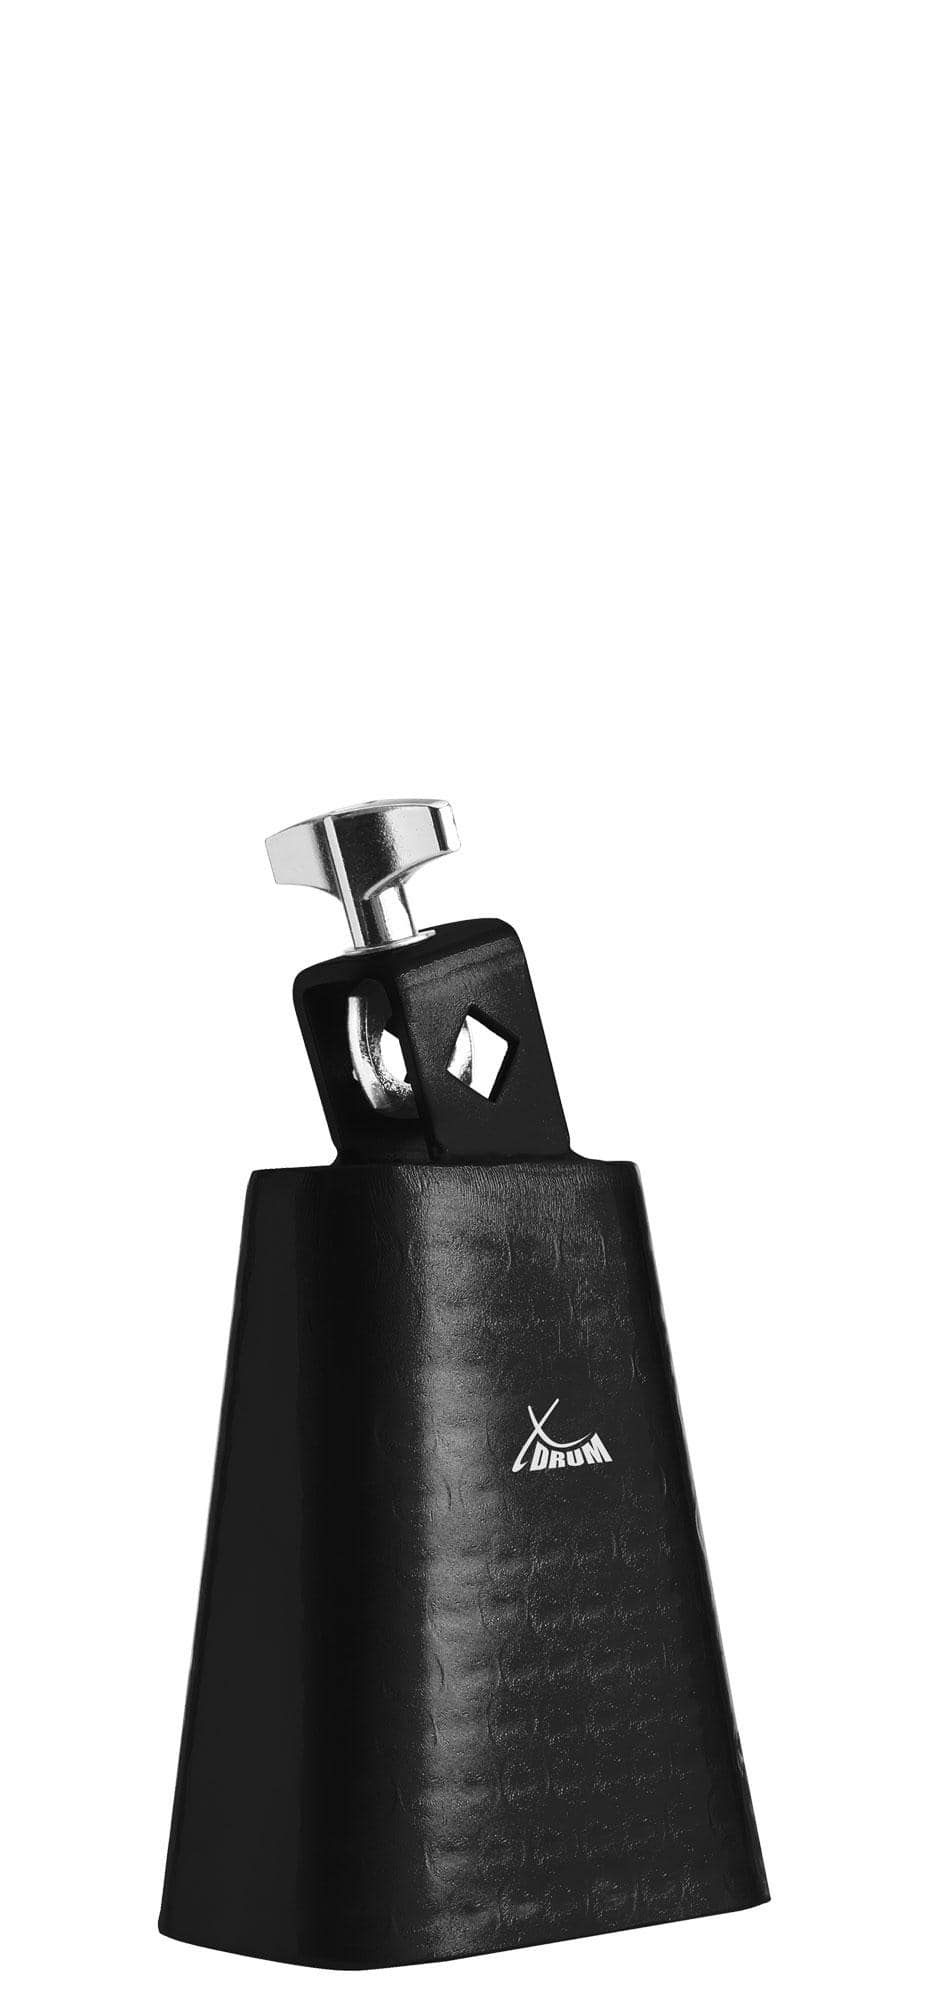 XDrum HCB 4 Cowbell